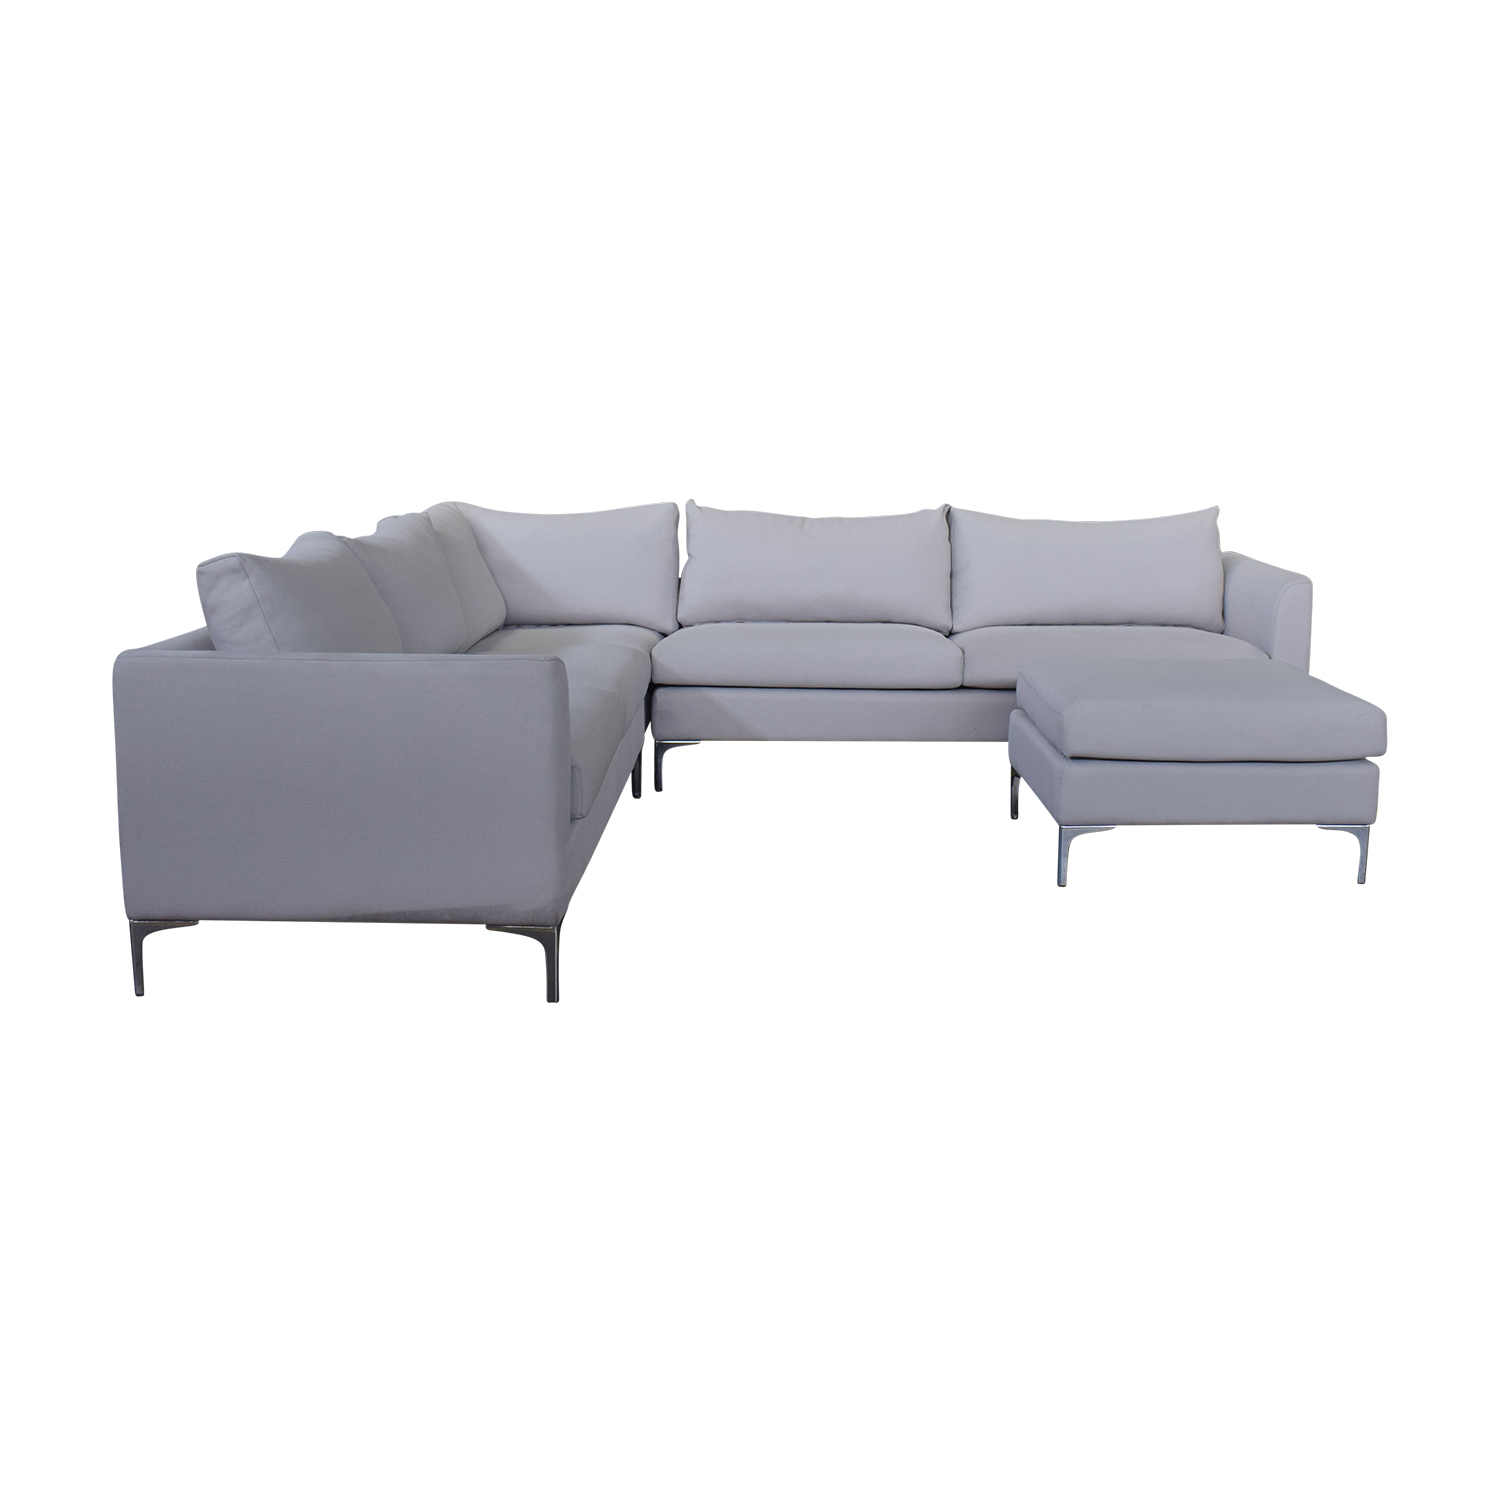 Interior Define Owens Grey L-Shaped Sectional with Ottoman price